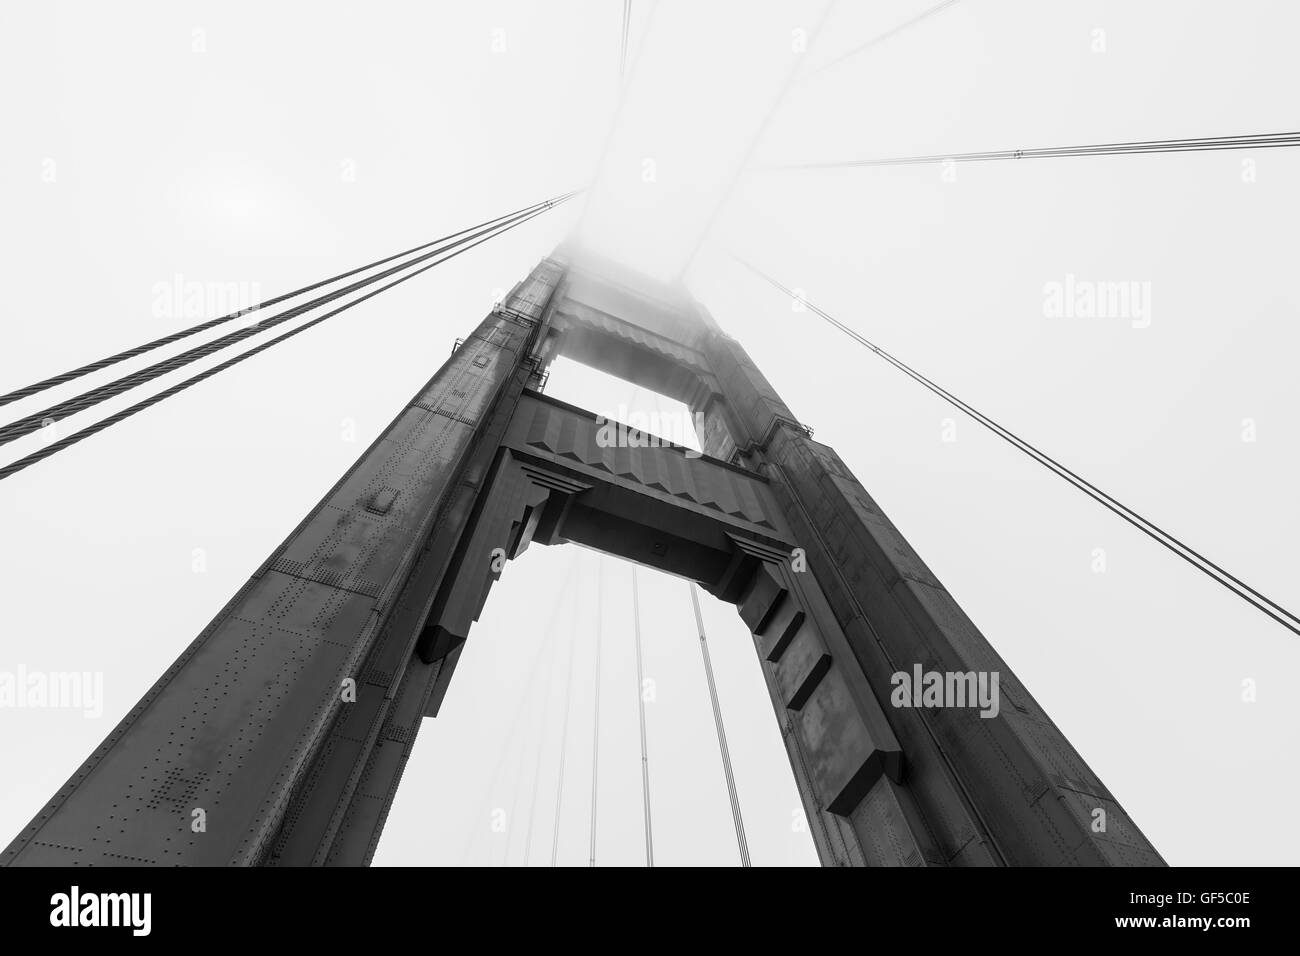 Golden Gate bridge tower emerging from iconic San Francisco bay fog bank in black and white. - Stock Image